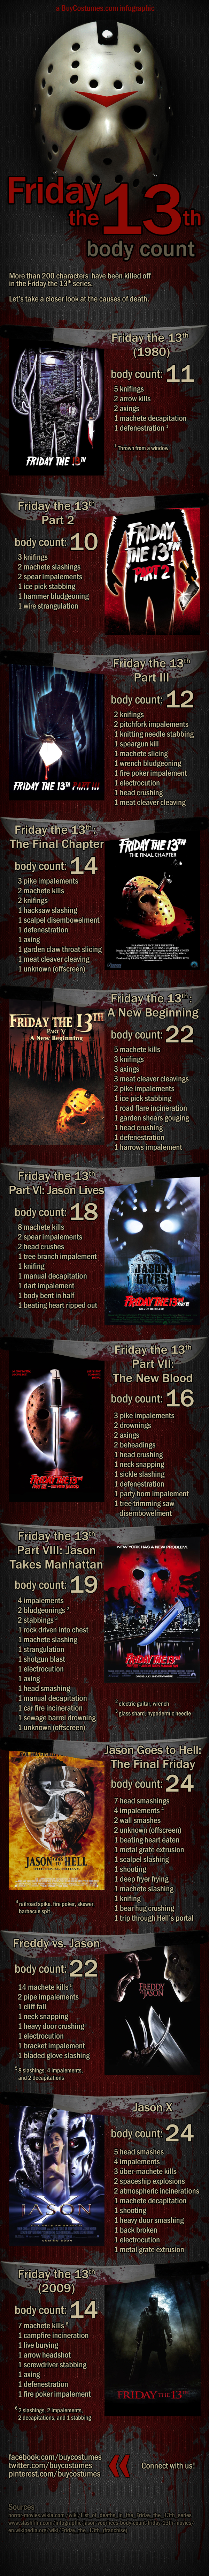 friday the 13th body count